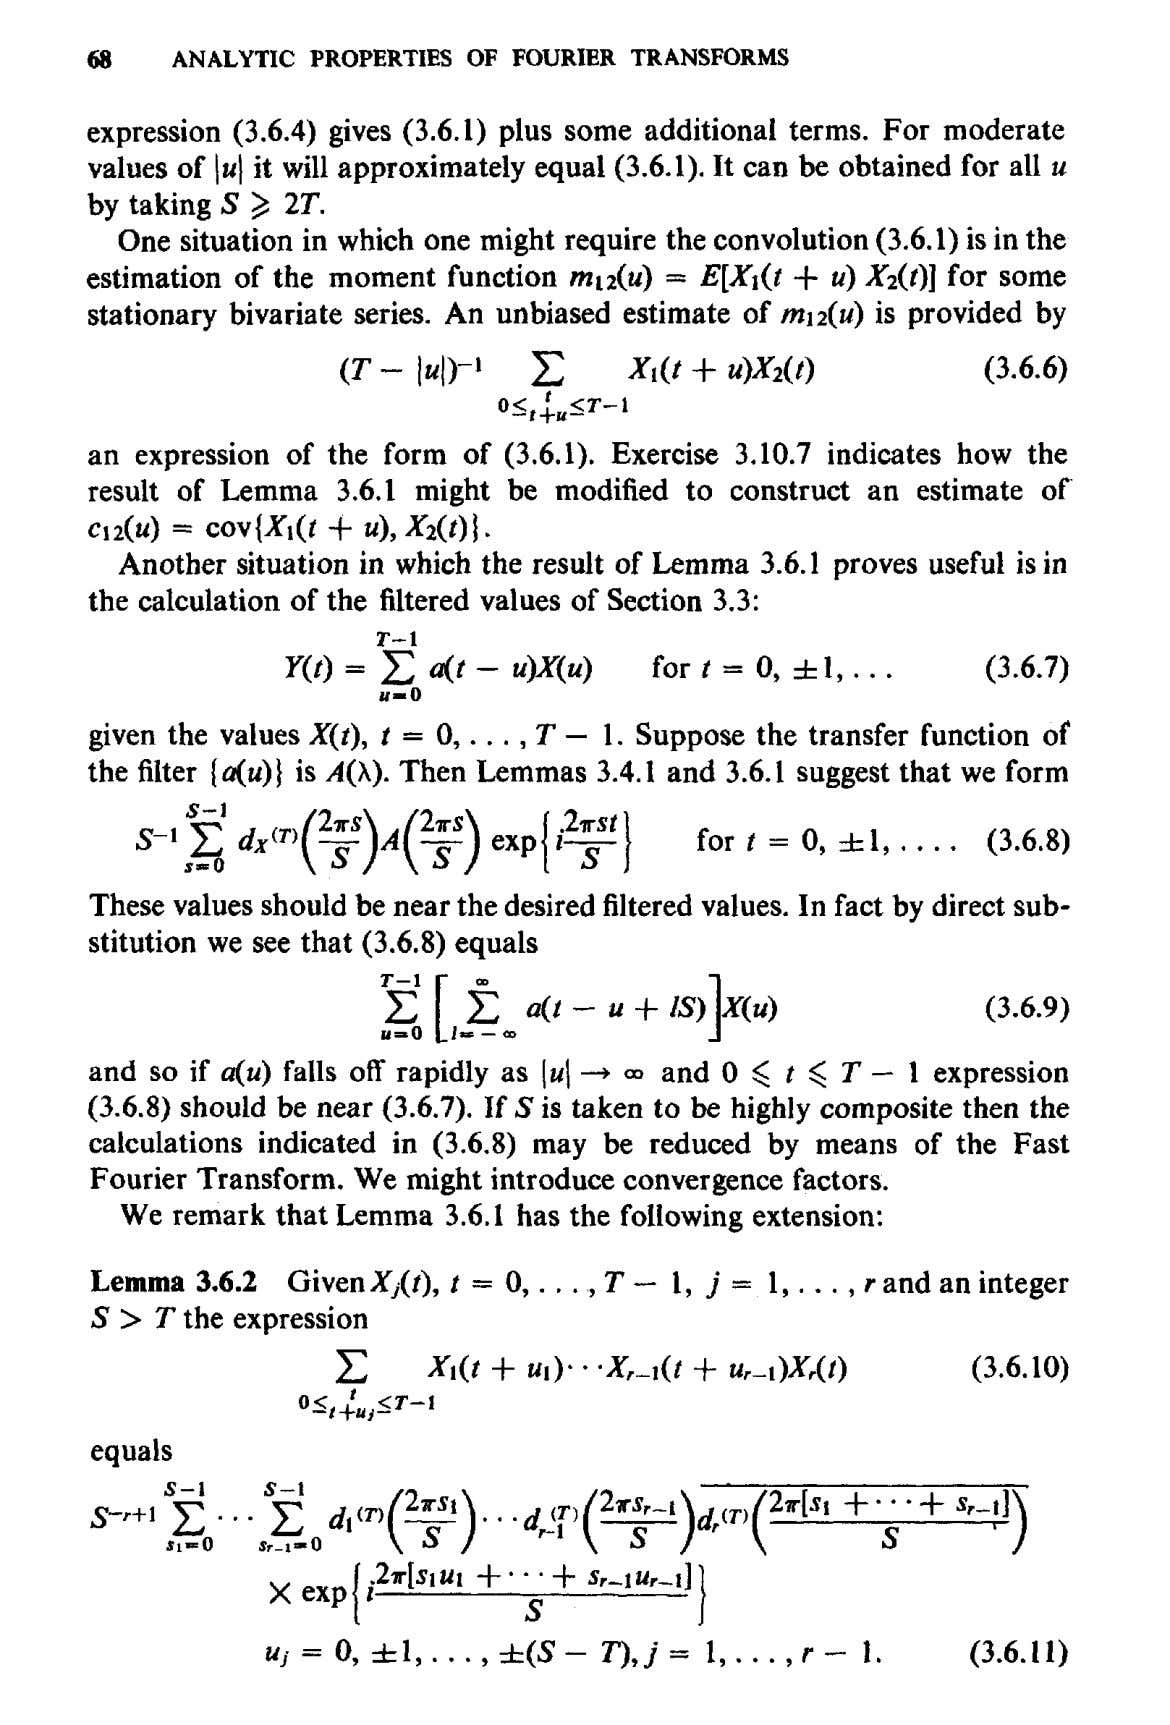 68 ANALYTIC PROPERTIES OF FOURIER TRANSFORMS expression (3.6.4) gives (3.6.1) plus some additional terms. For